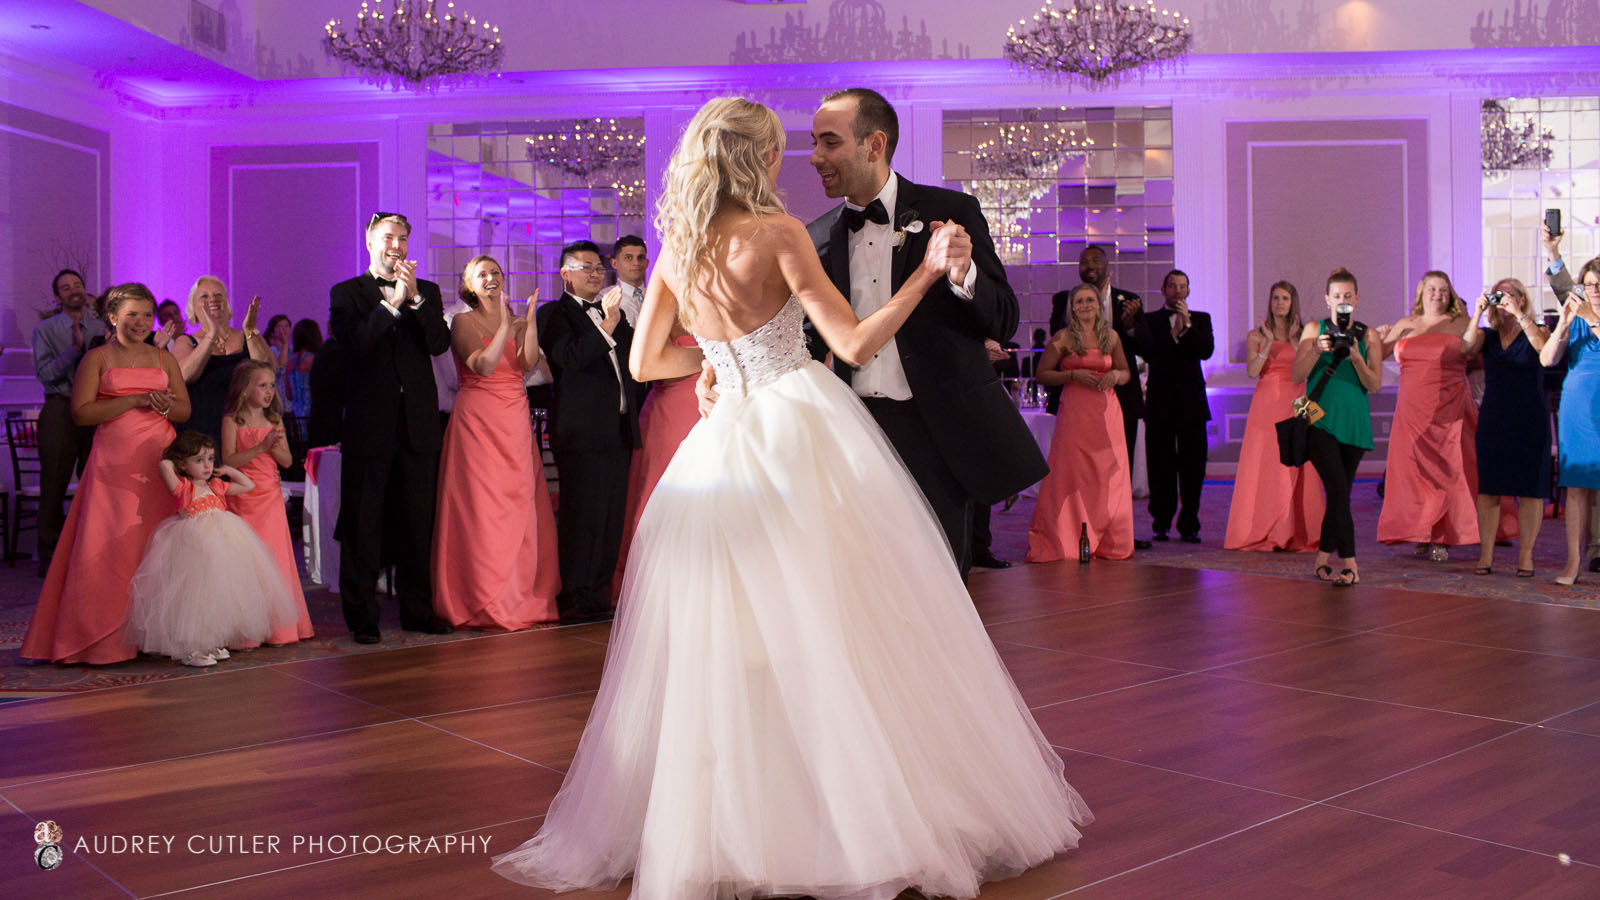 Framingham, MA Wedding Venues - Dance Floor